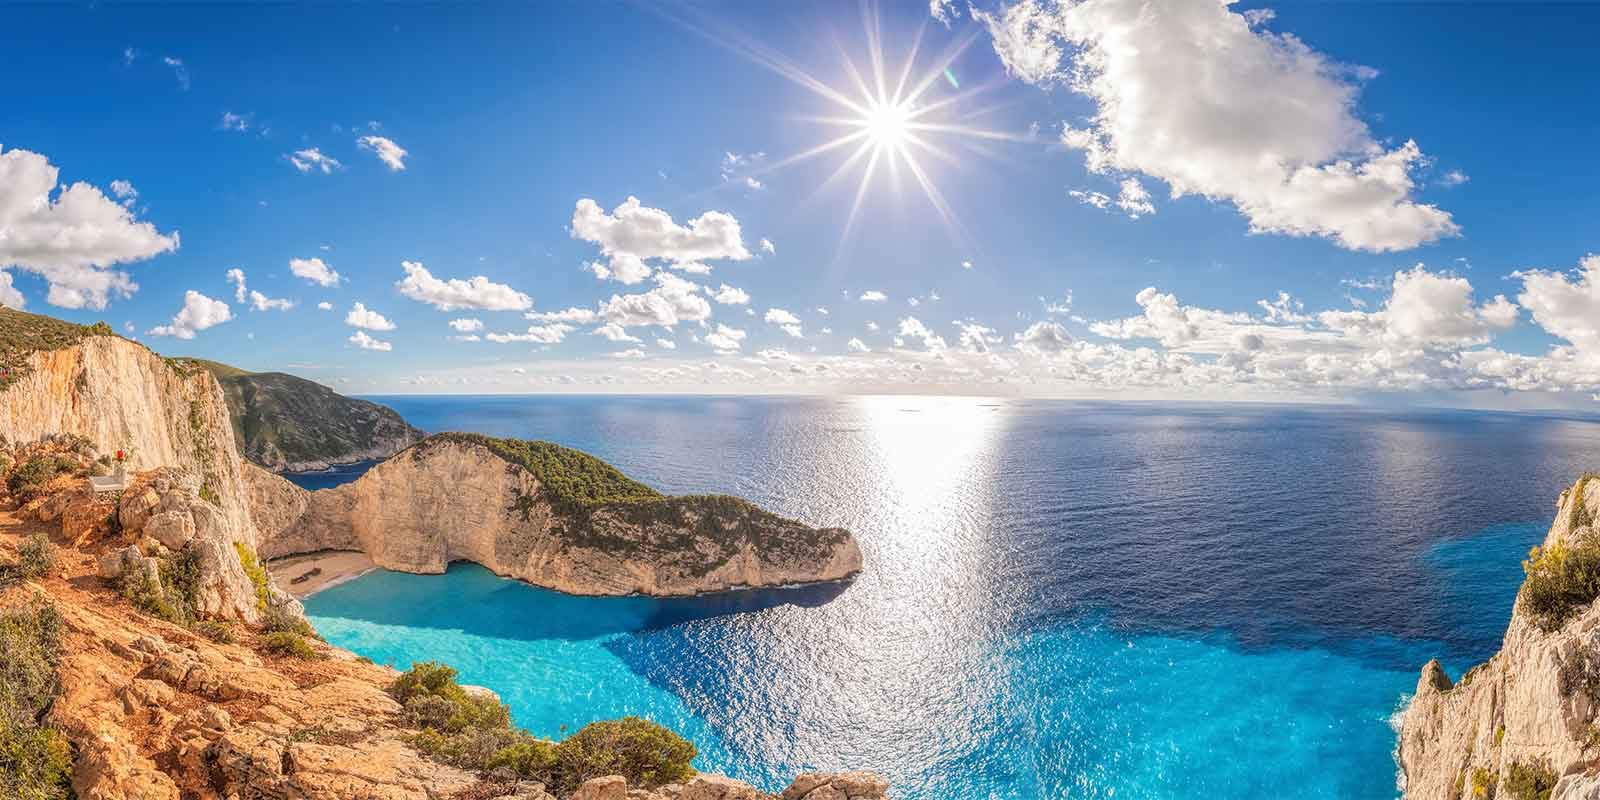 Turquoise bay and cliffs at sunset on Zakynthos island in Greece